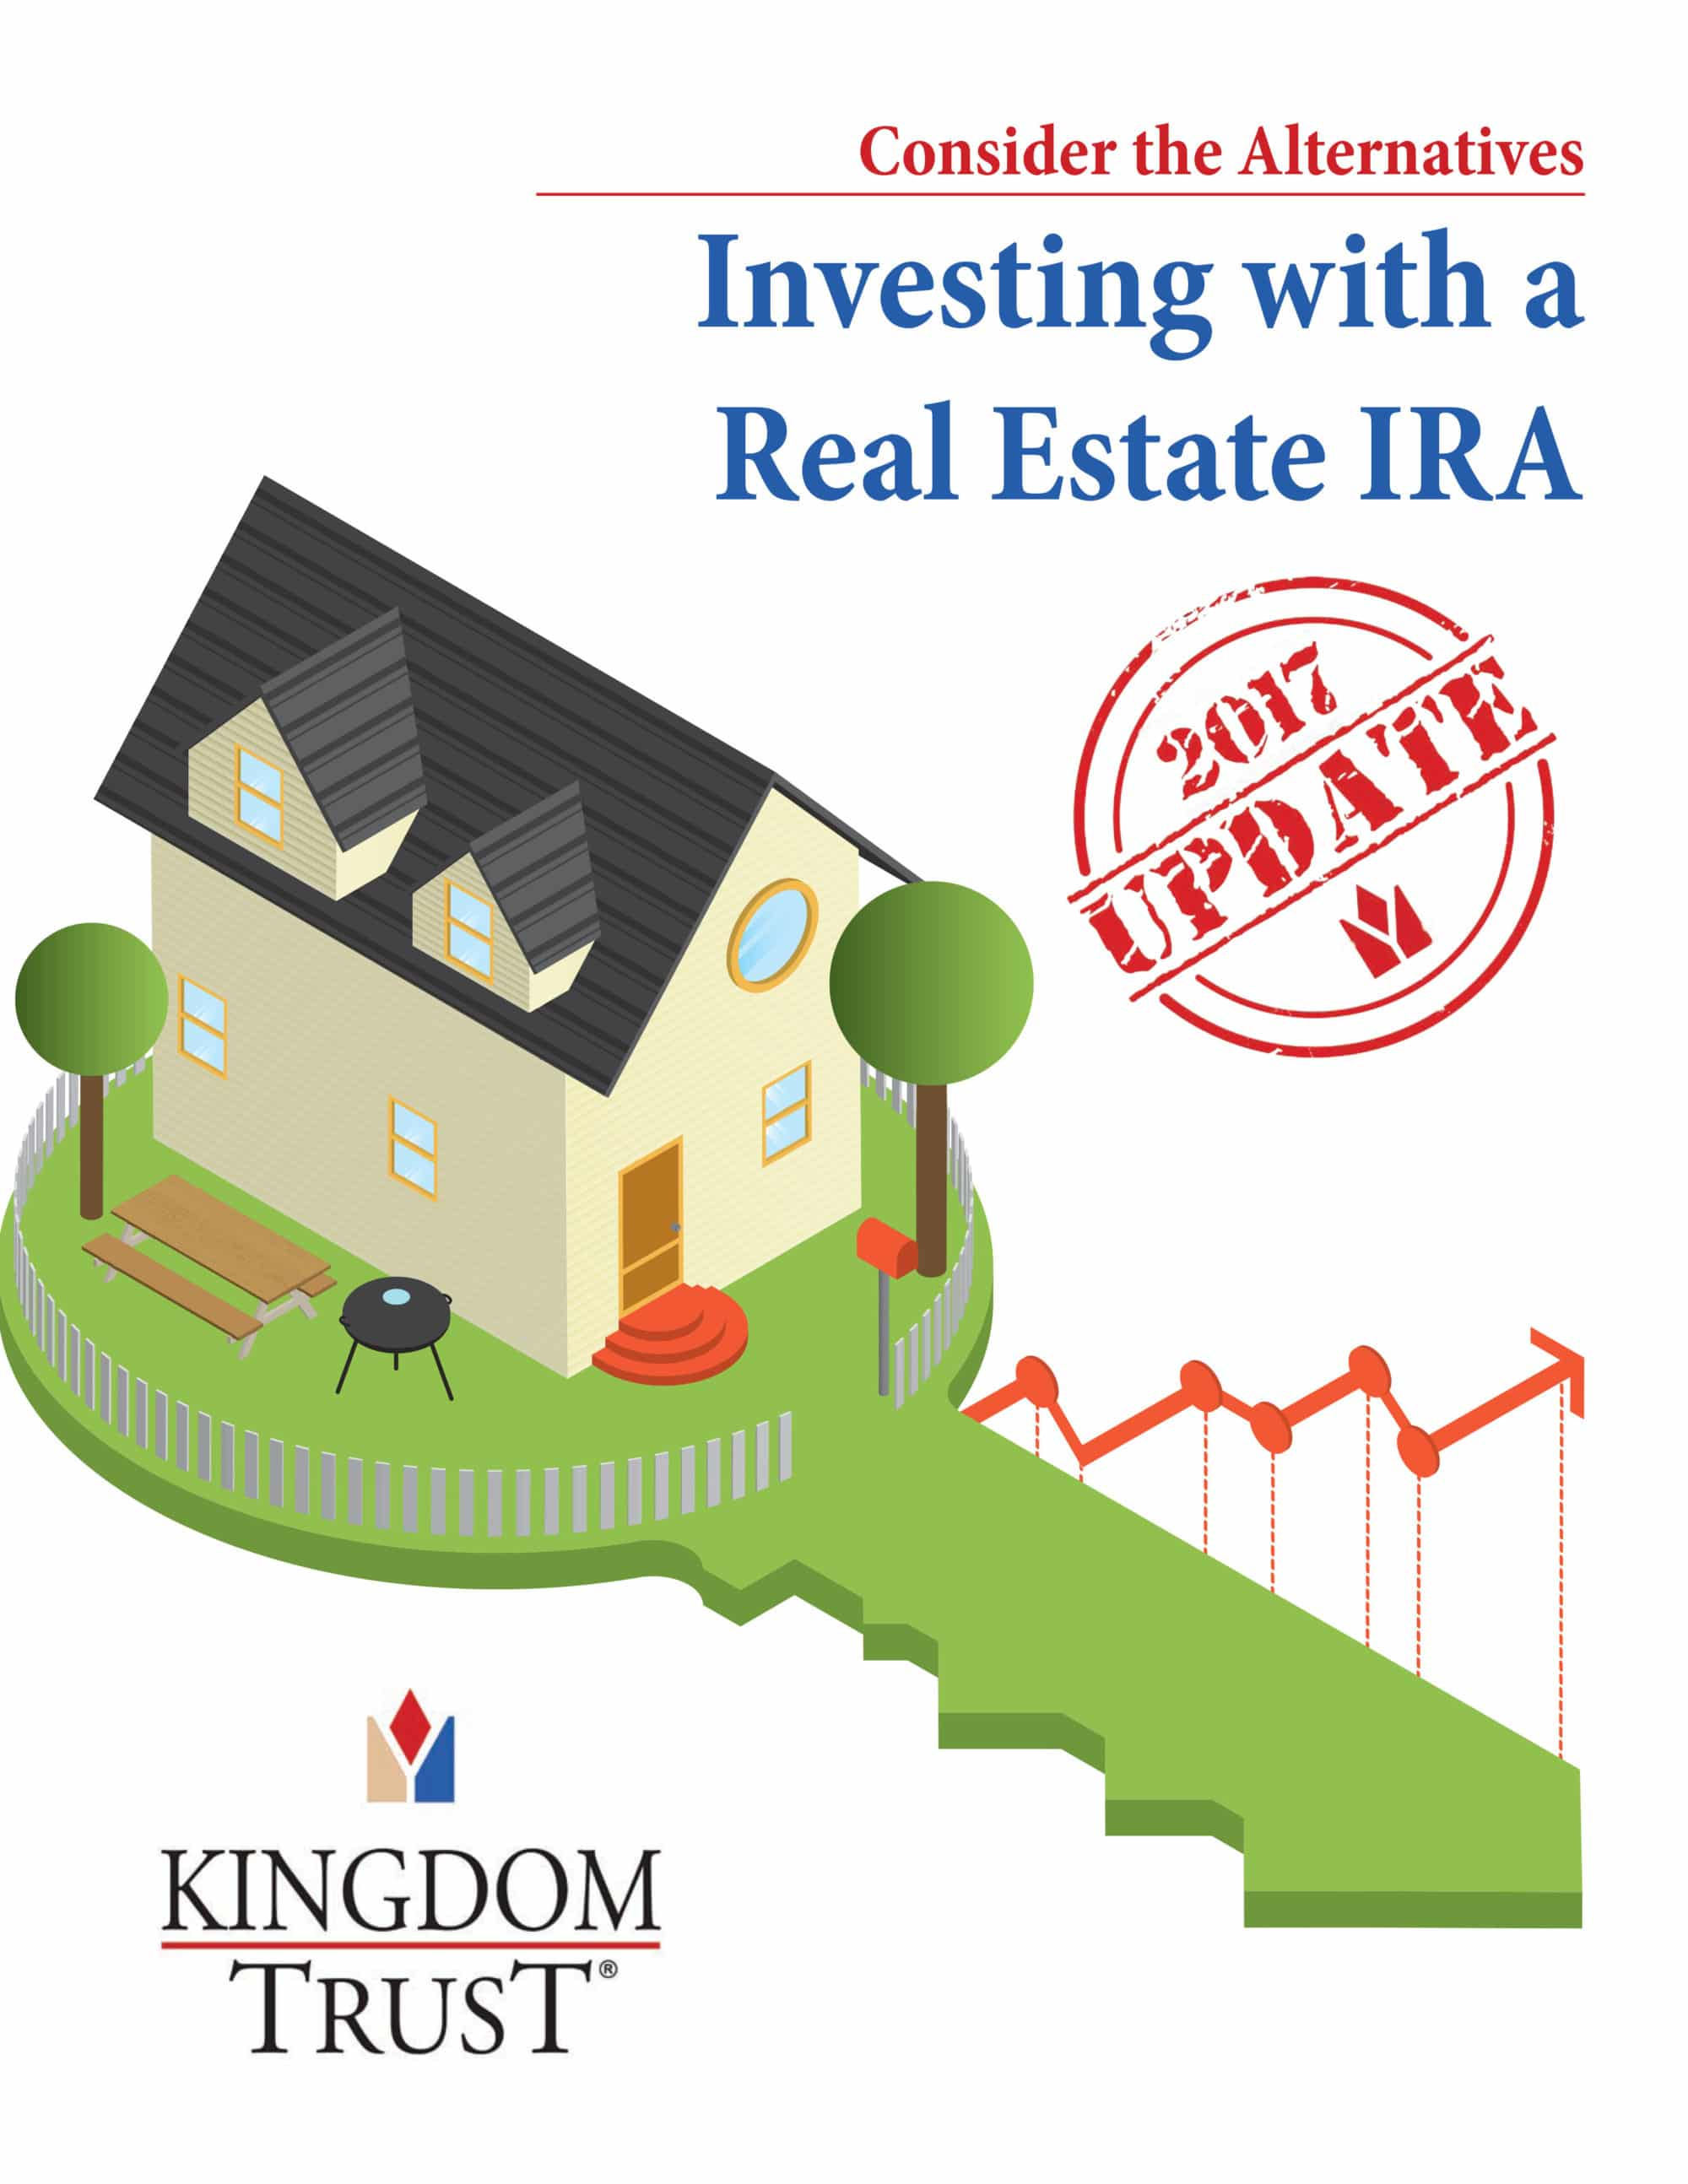 Investing with a Real Estate IRA